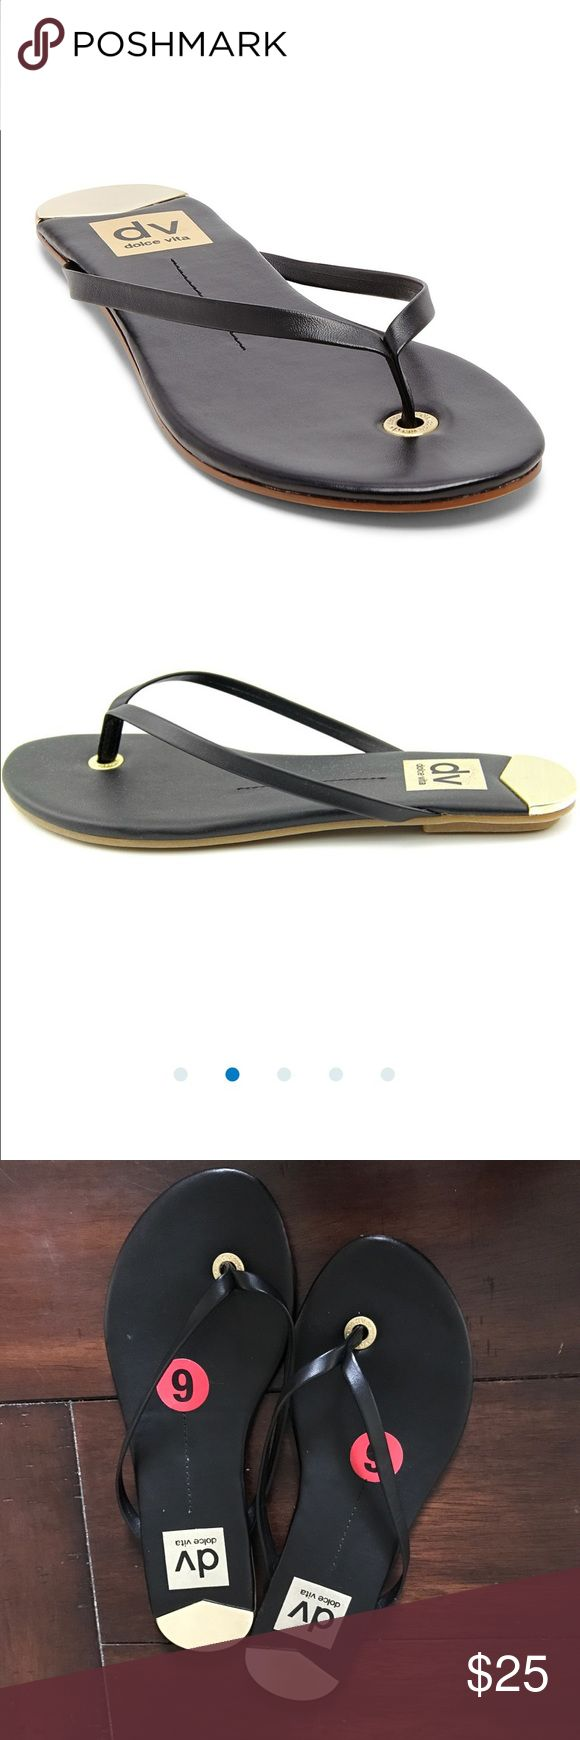 DV by Dolce Vita Flip Flops Sandals Black  flip flop * Man-made upper * Metal accent at Toe and heel*Stacked heel * Man-made insole and sole. Brand new without box. Tiny scratch on back of one heel. DV by Dolce Vita Shoes Sandals